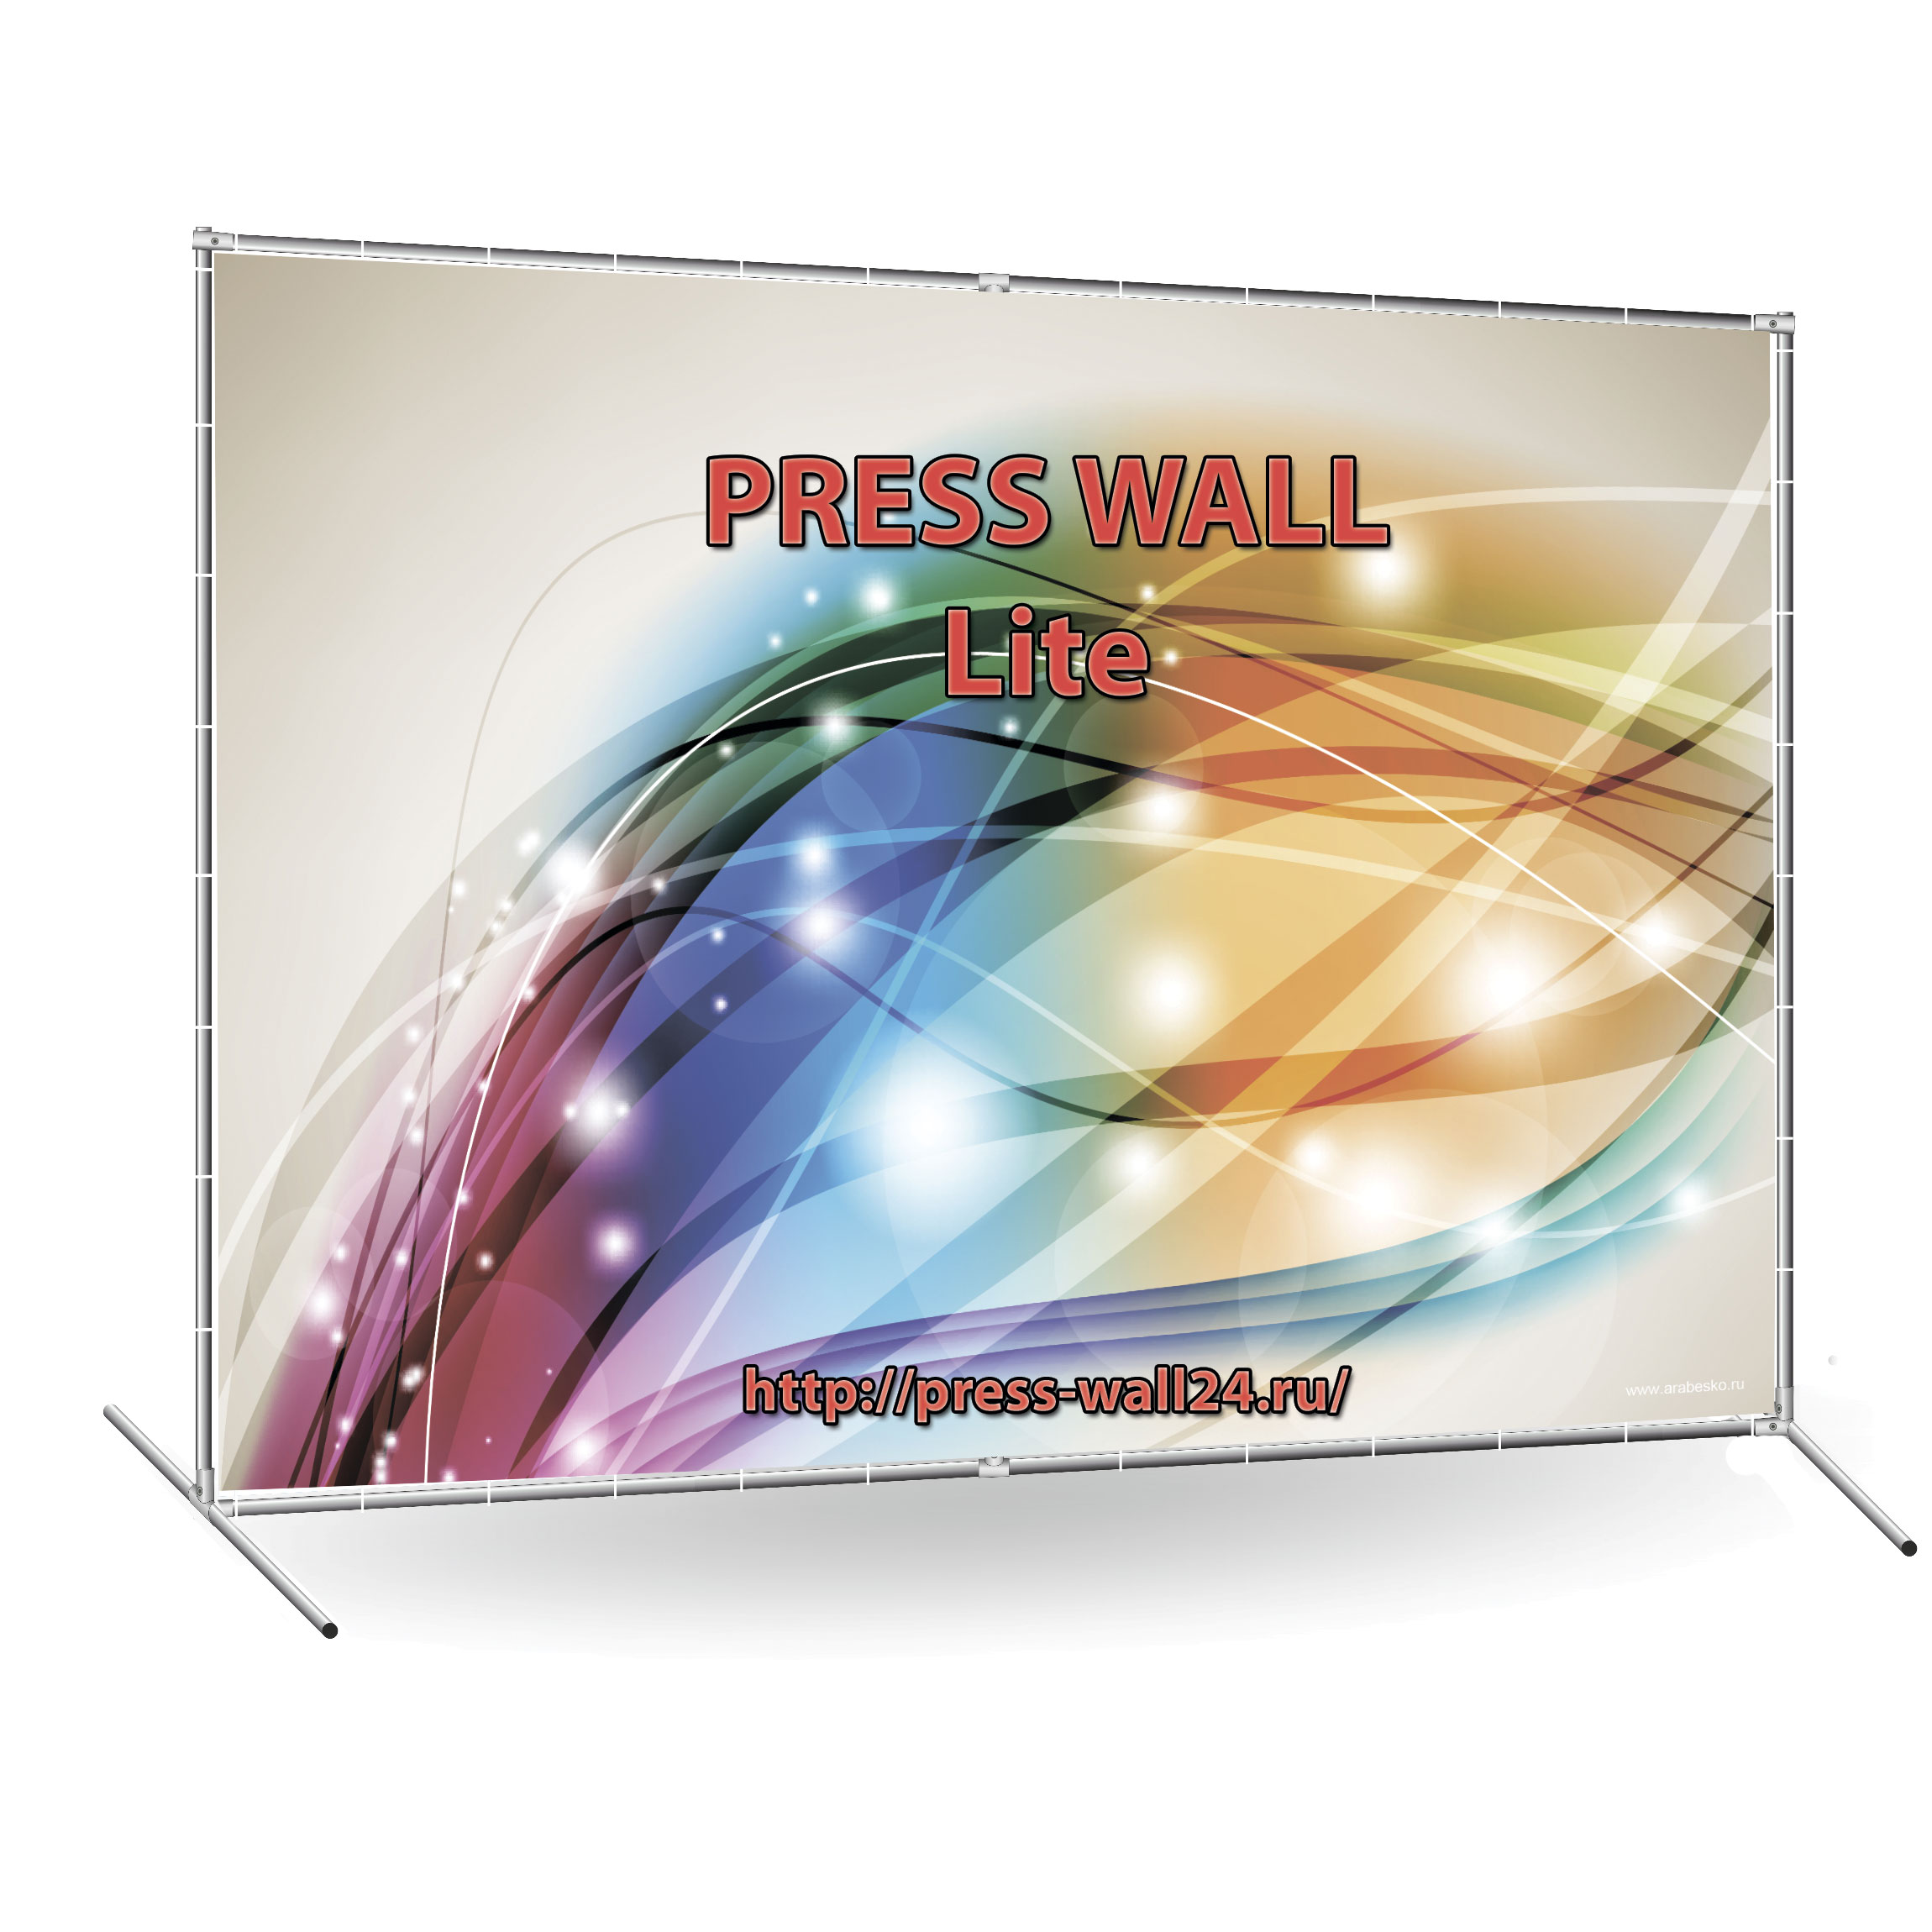 Press-wall Lite